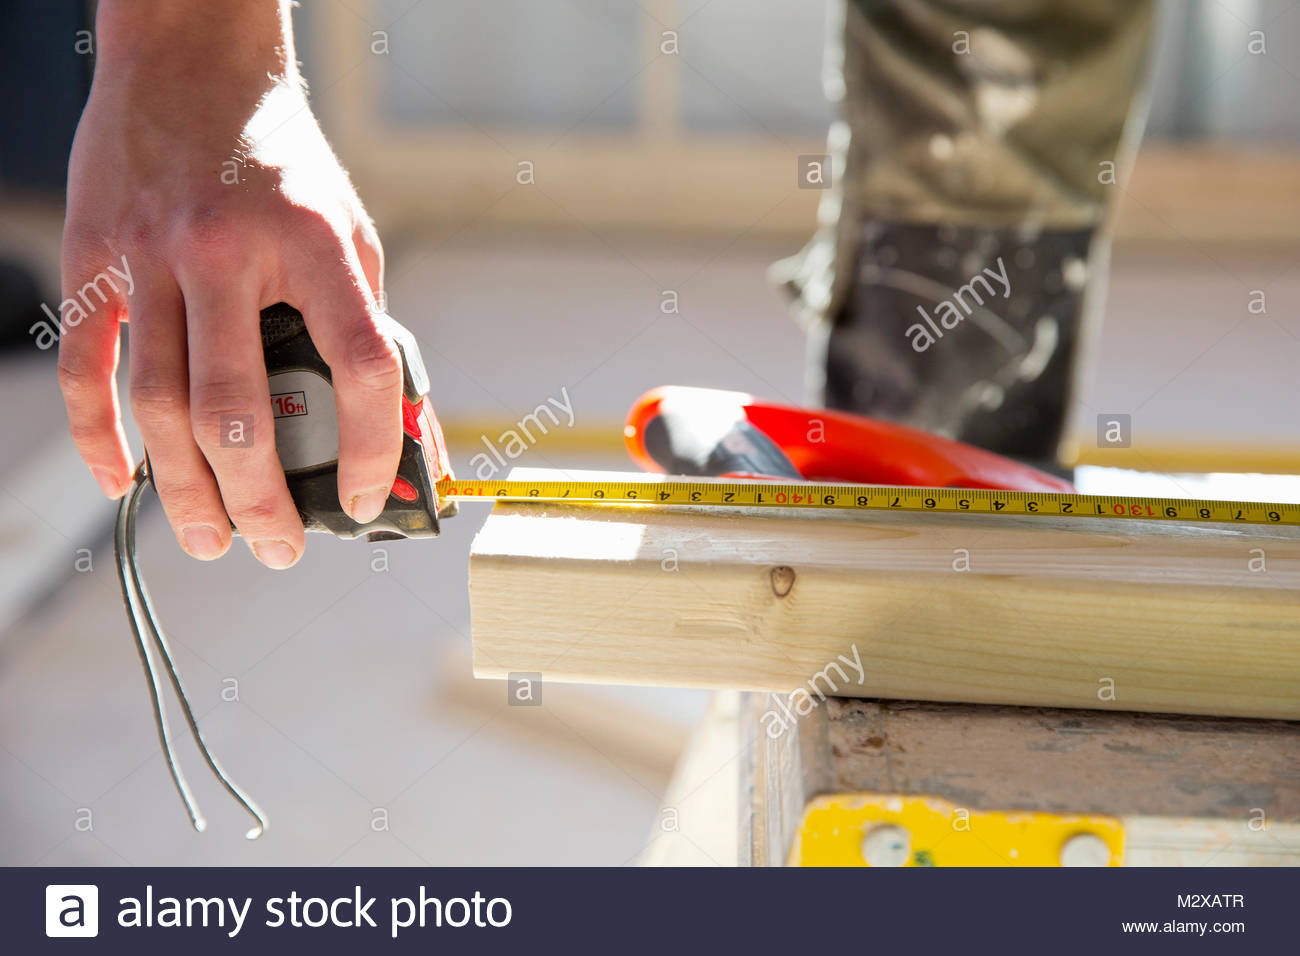 Close-up of carpenter measuring piece of wood on construction site interior - Stock Image